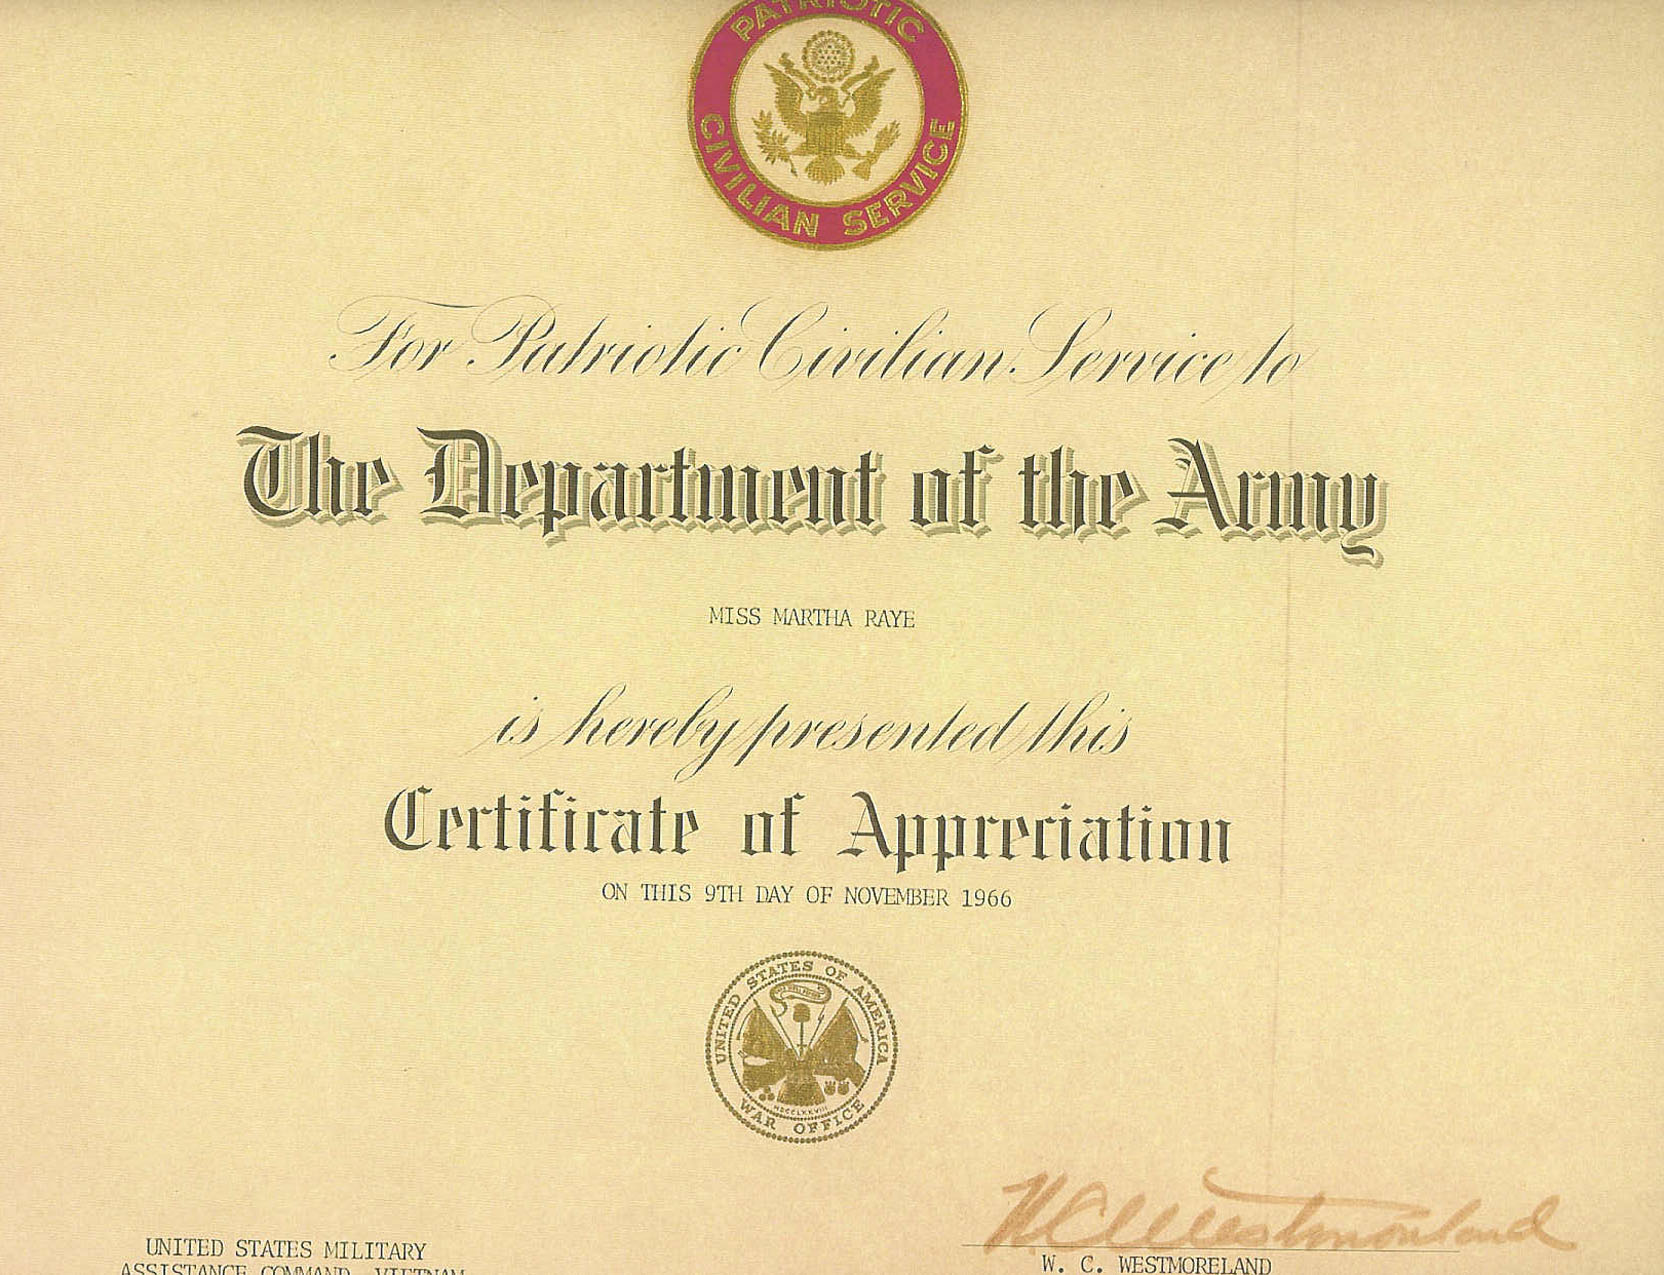 Air force certificate of appreciation template image collections usmc certificate of commendation template gallery templates air force certificate of appreciation template gallery templates awards 1betcityfo Images